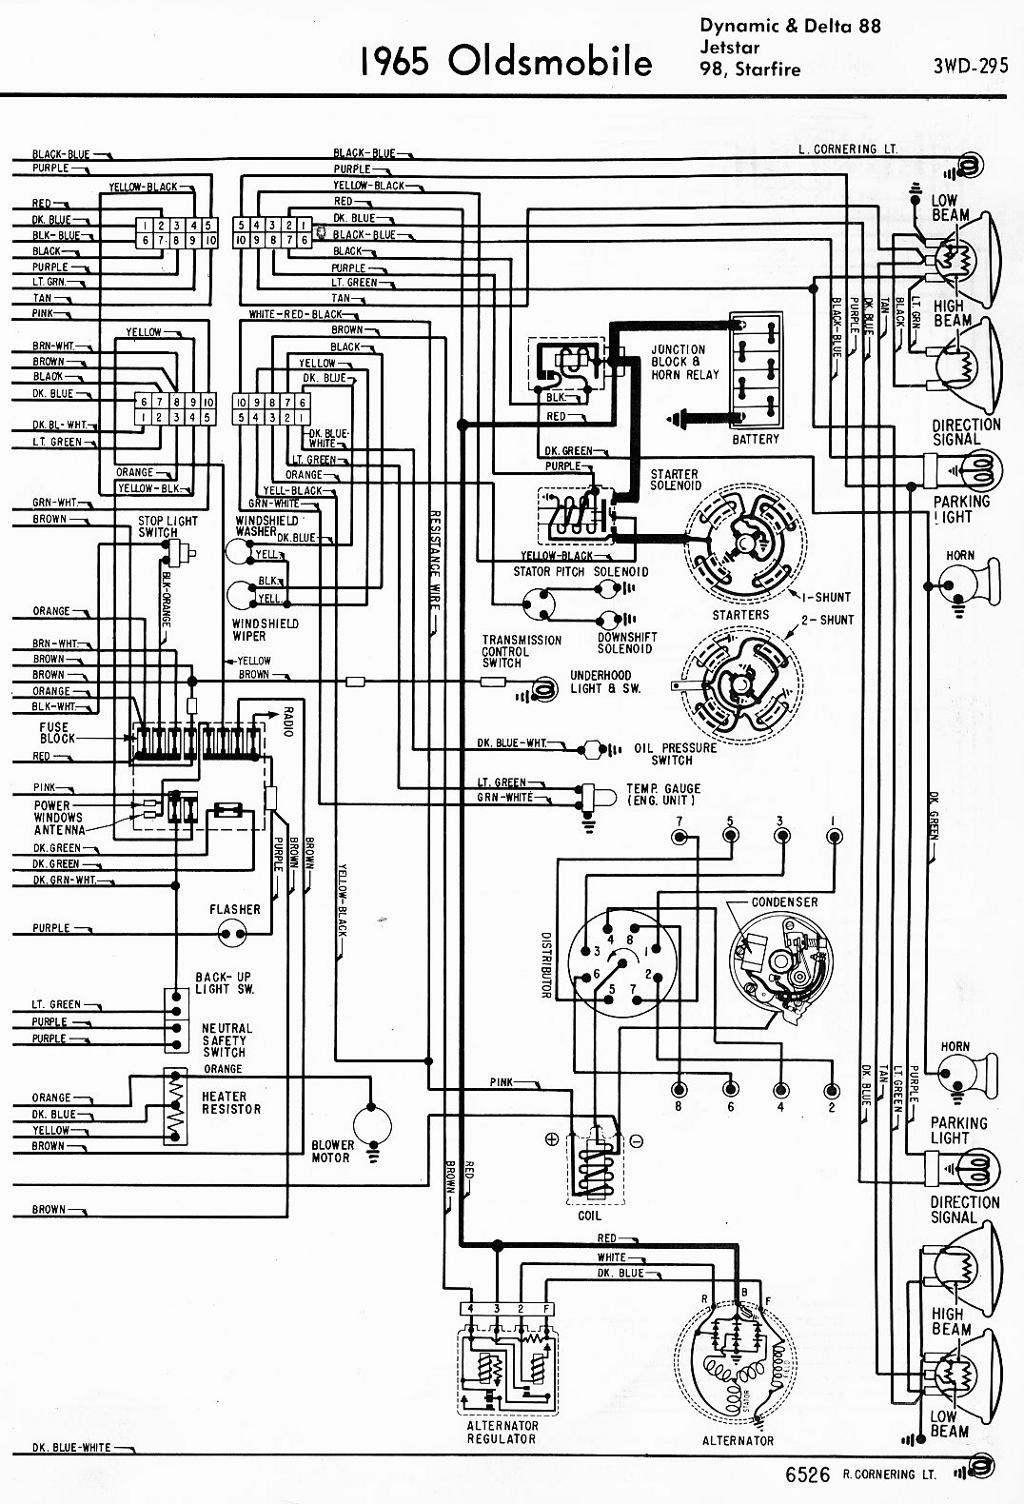 Oldsmobile Engine Diagram Free Download Wiring Diagram ... on